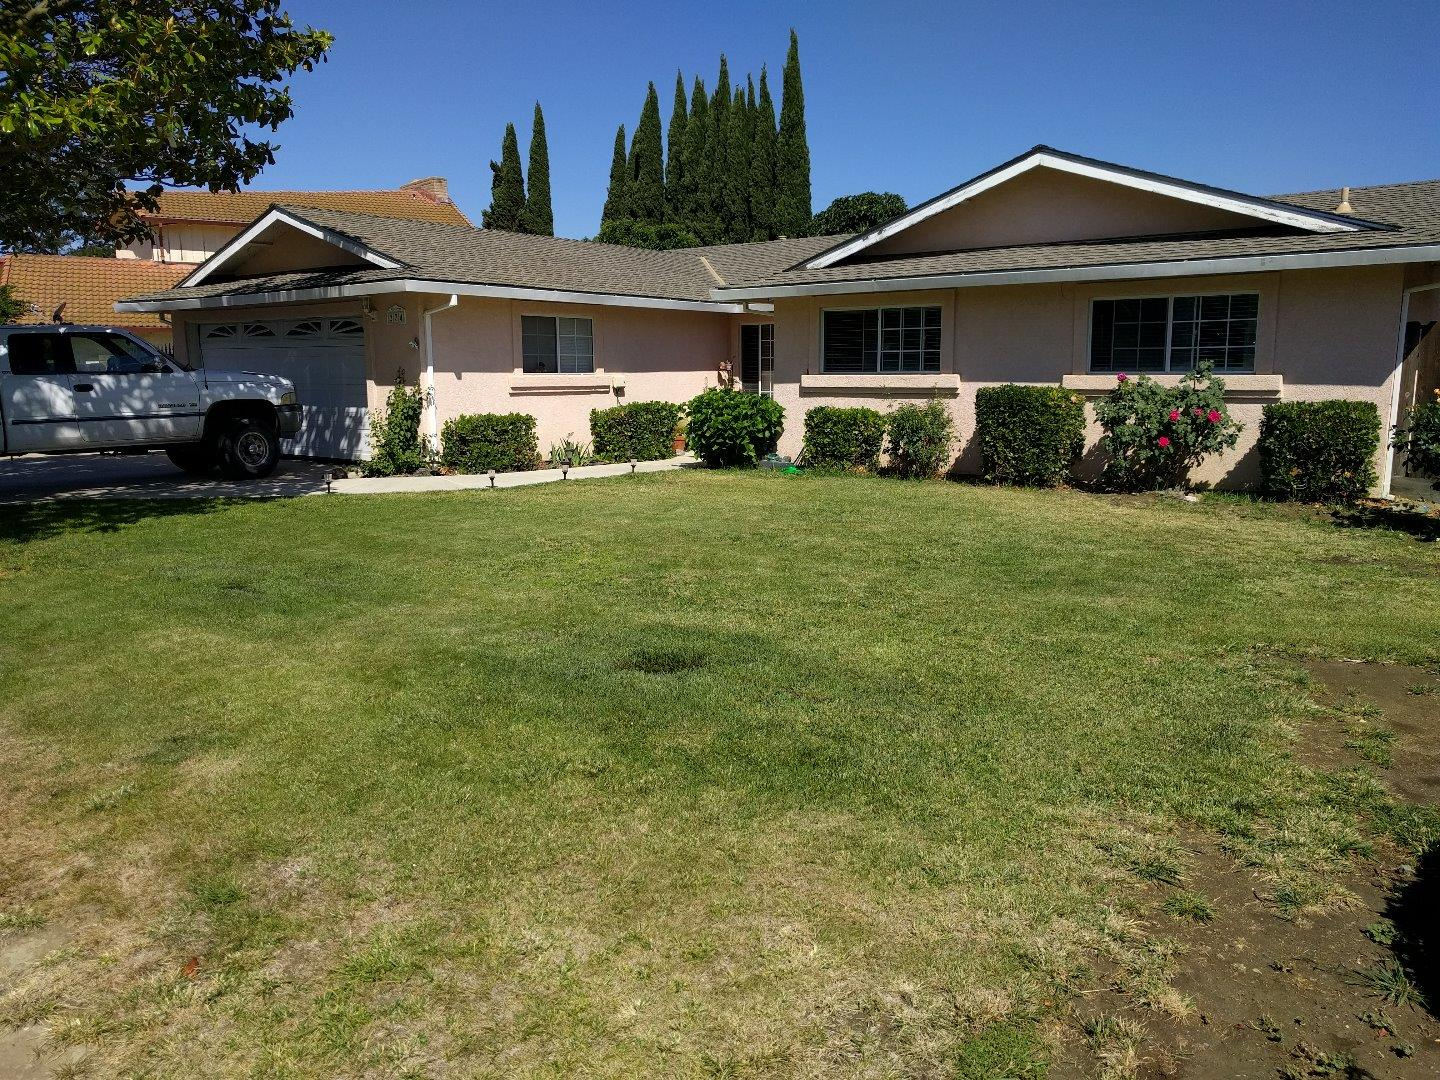 Single Family Home for Sale at 274 Rio Vista Drive King City, California 93930 United States